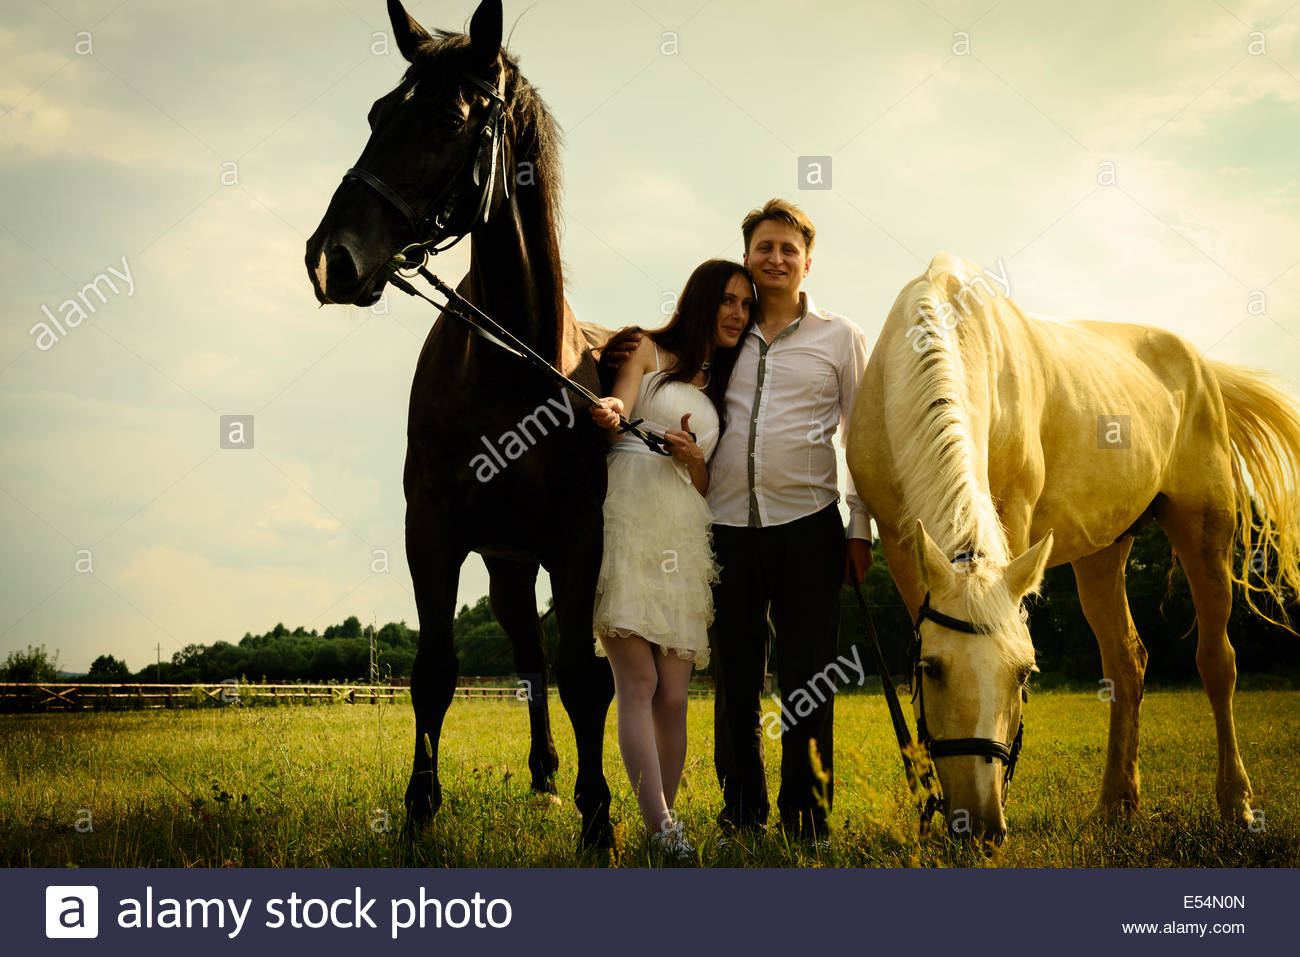 wedding of unusual couple happy near black and white horses - Stock Image